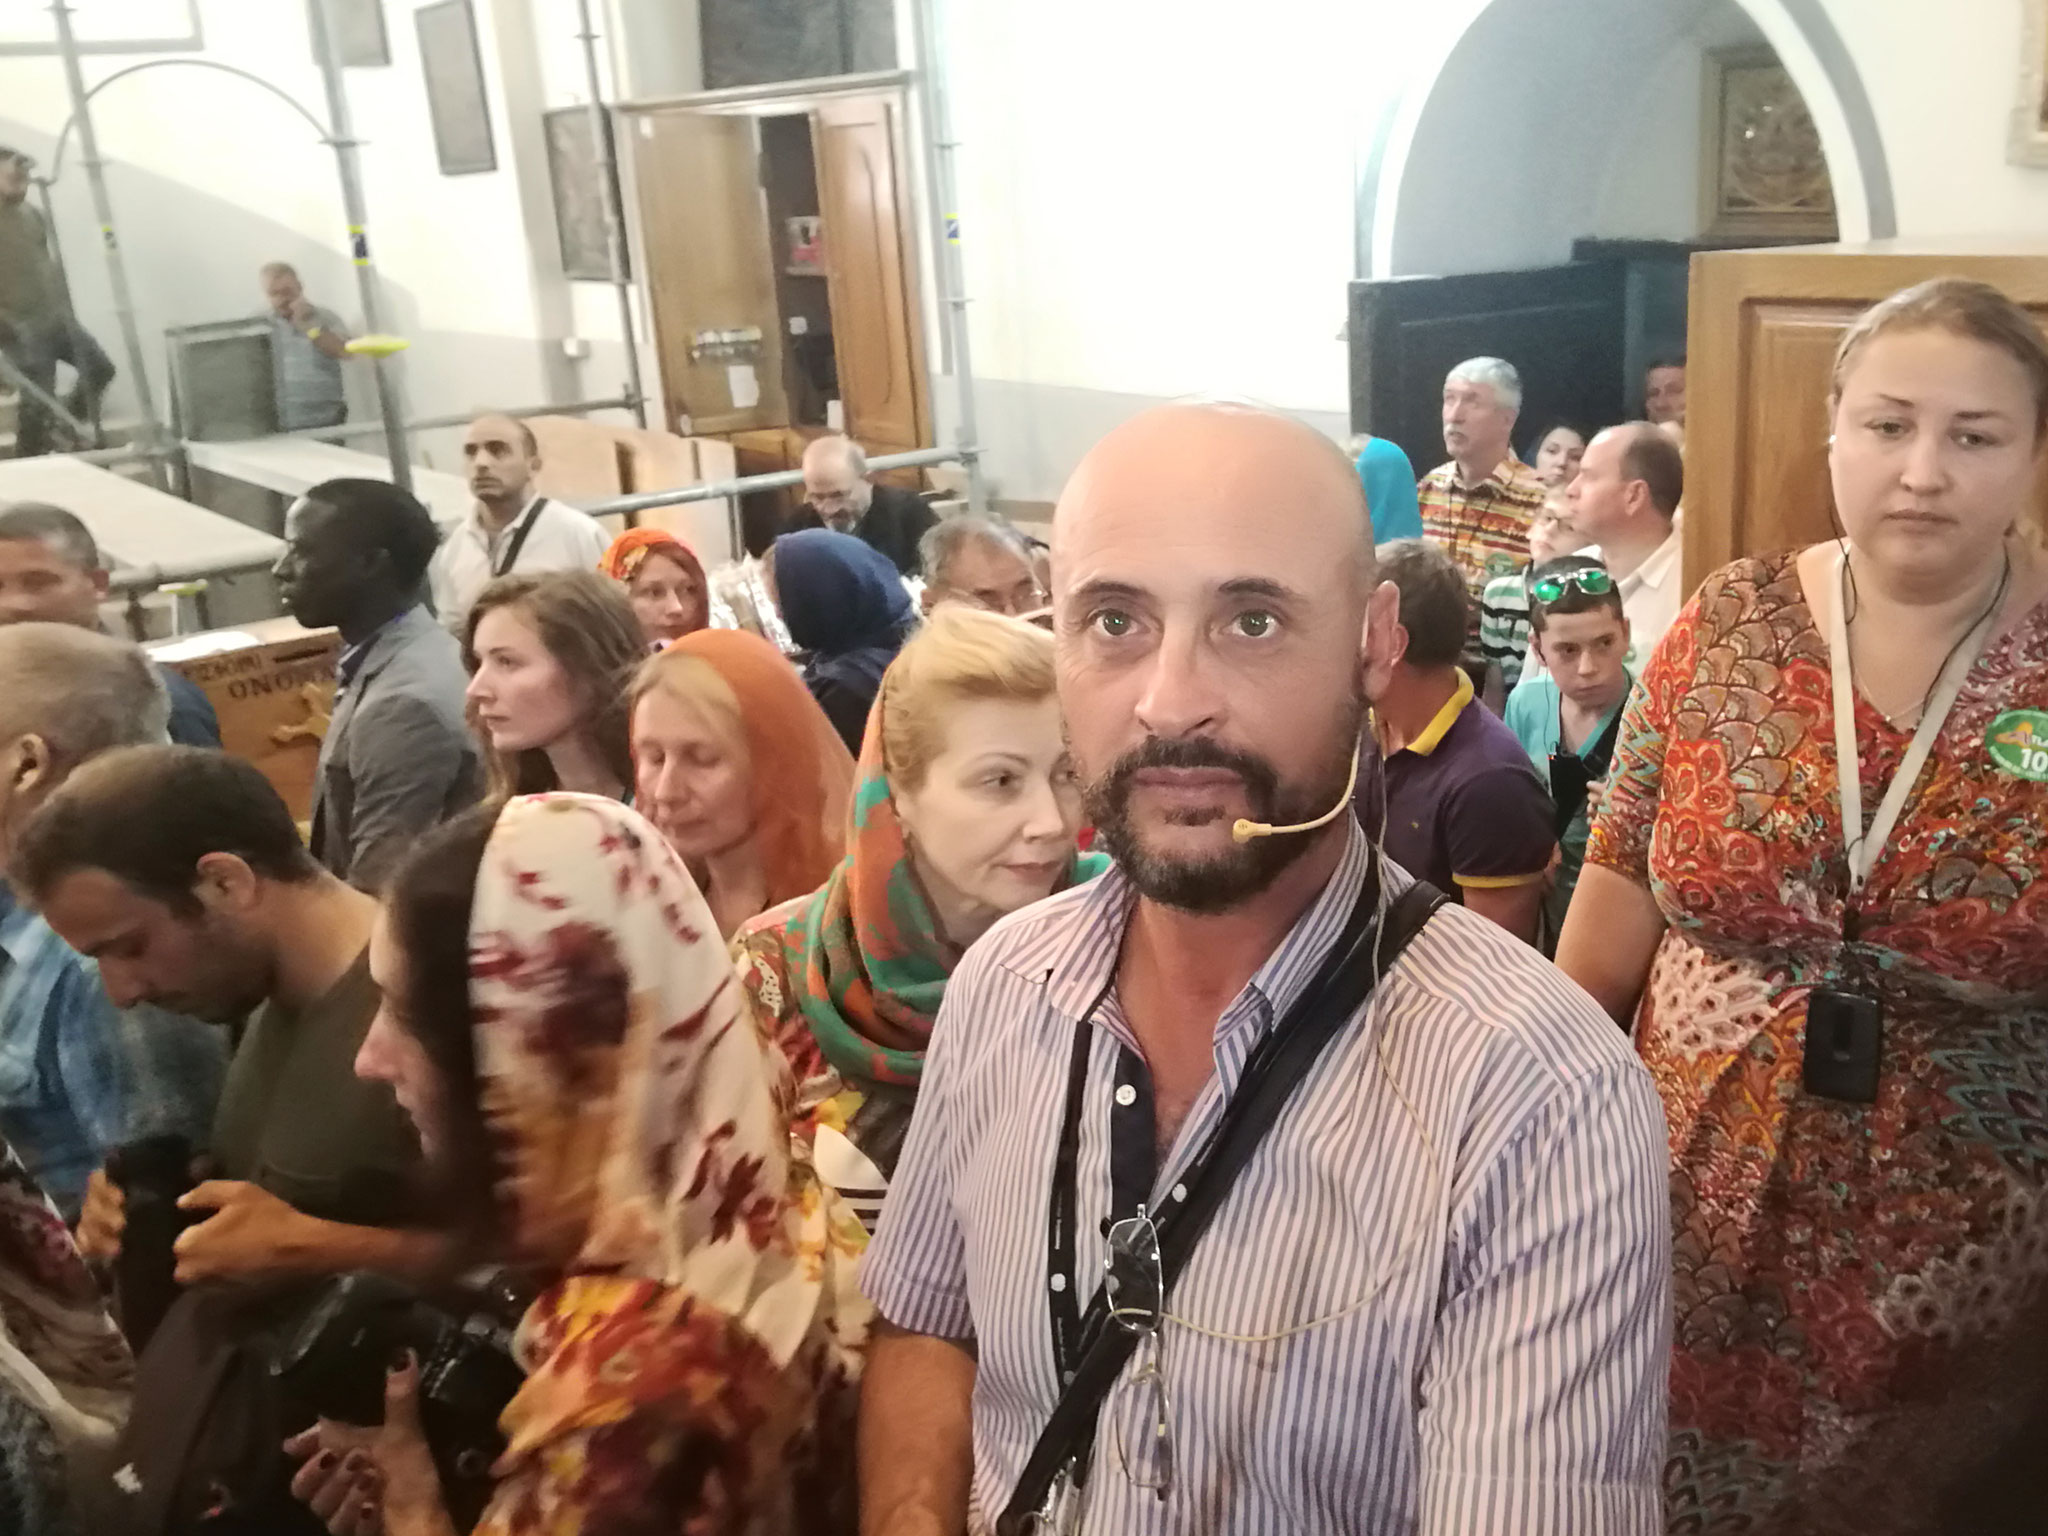 Crowds of pilgrims at the Nativity Church, Bethlehem, 2018